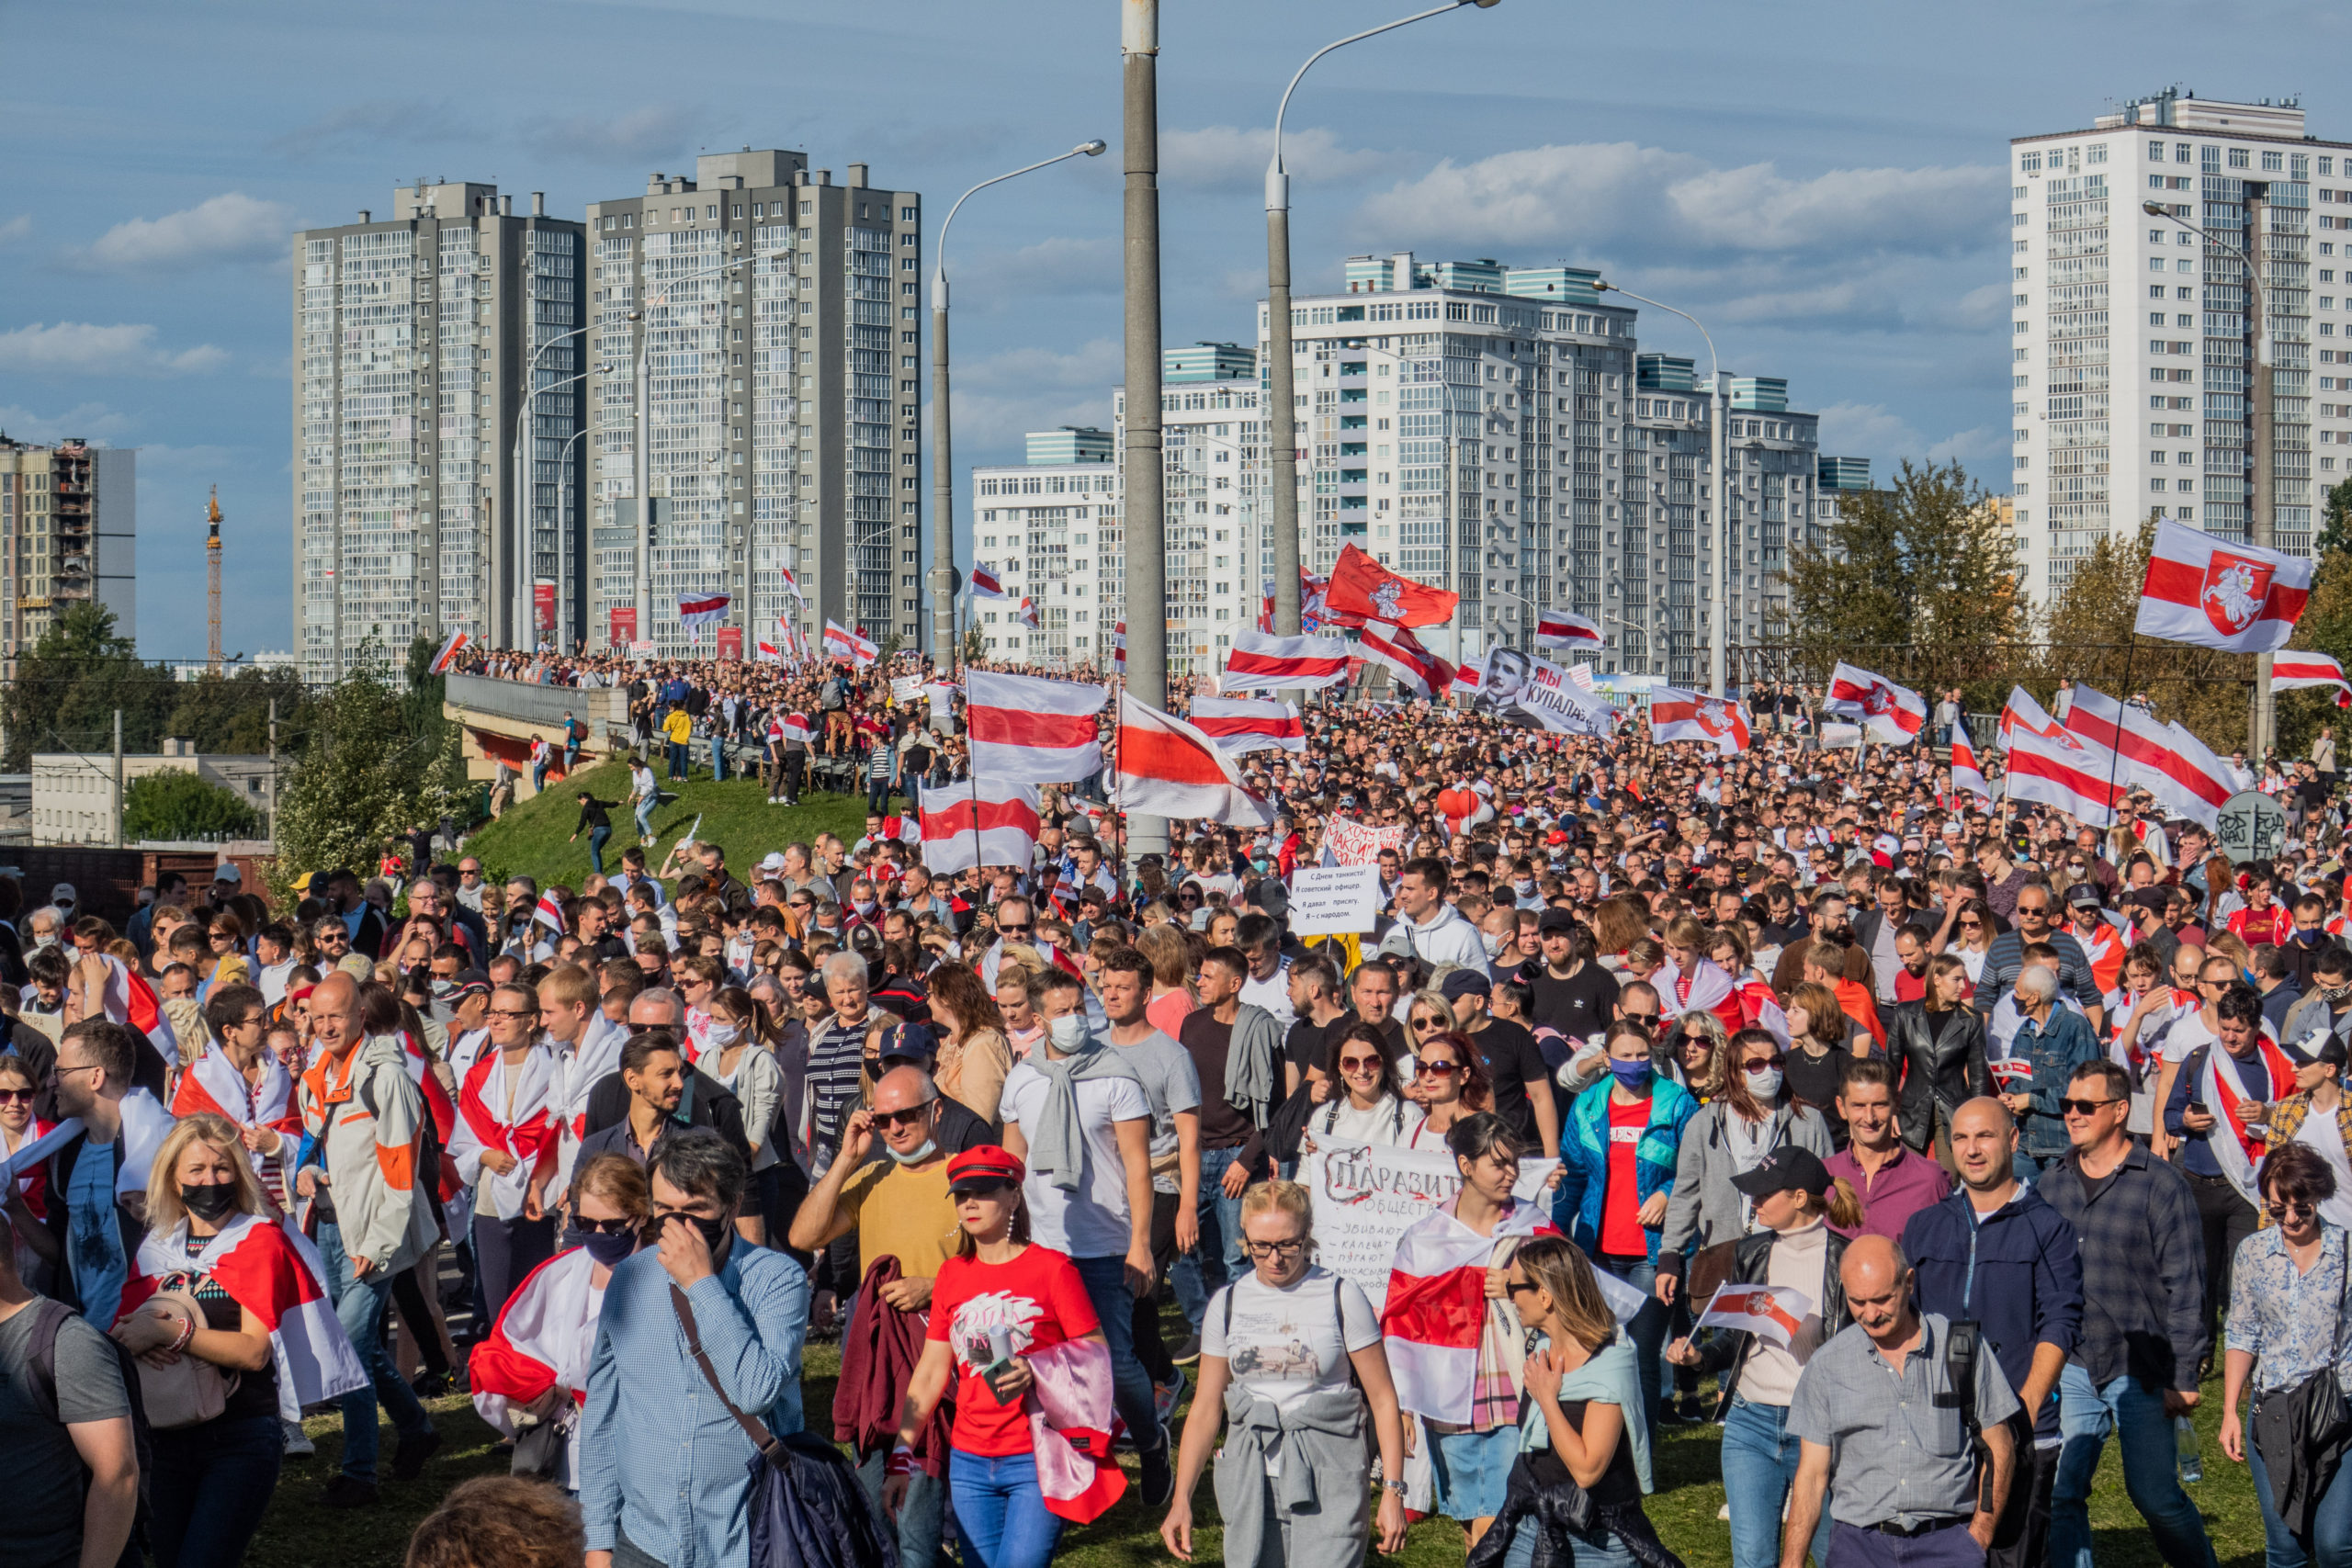 Protest rally against Lukashenko, 13 September 2020. Minsk, Belarus by Homoatrox under CC 3.0.